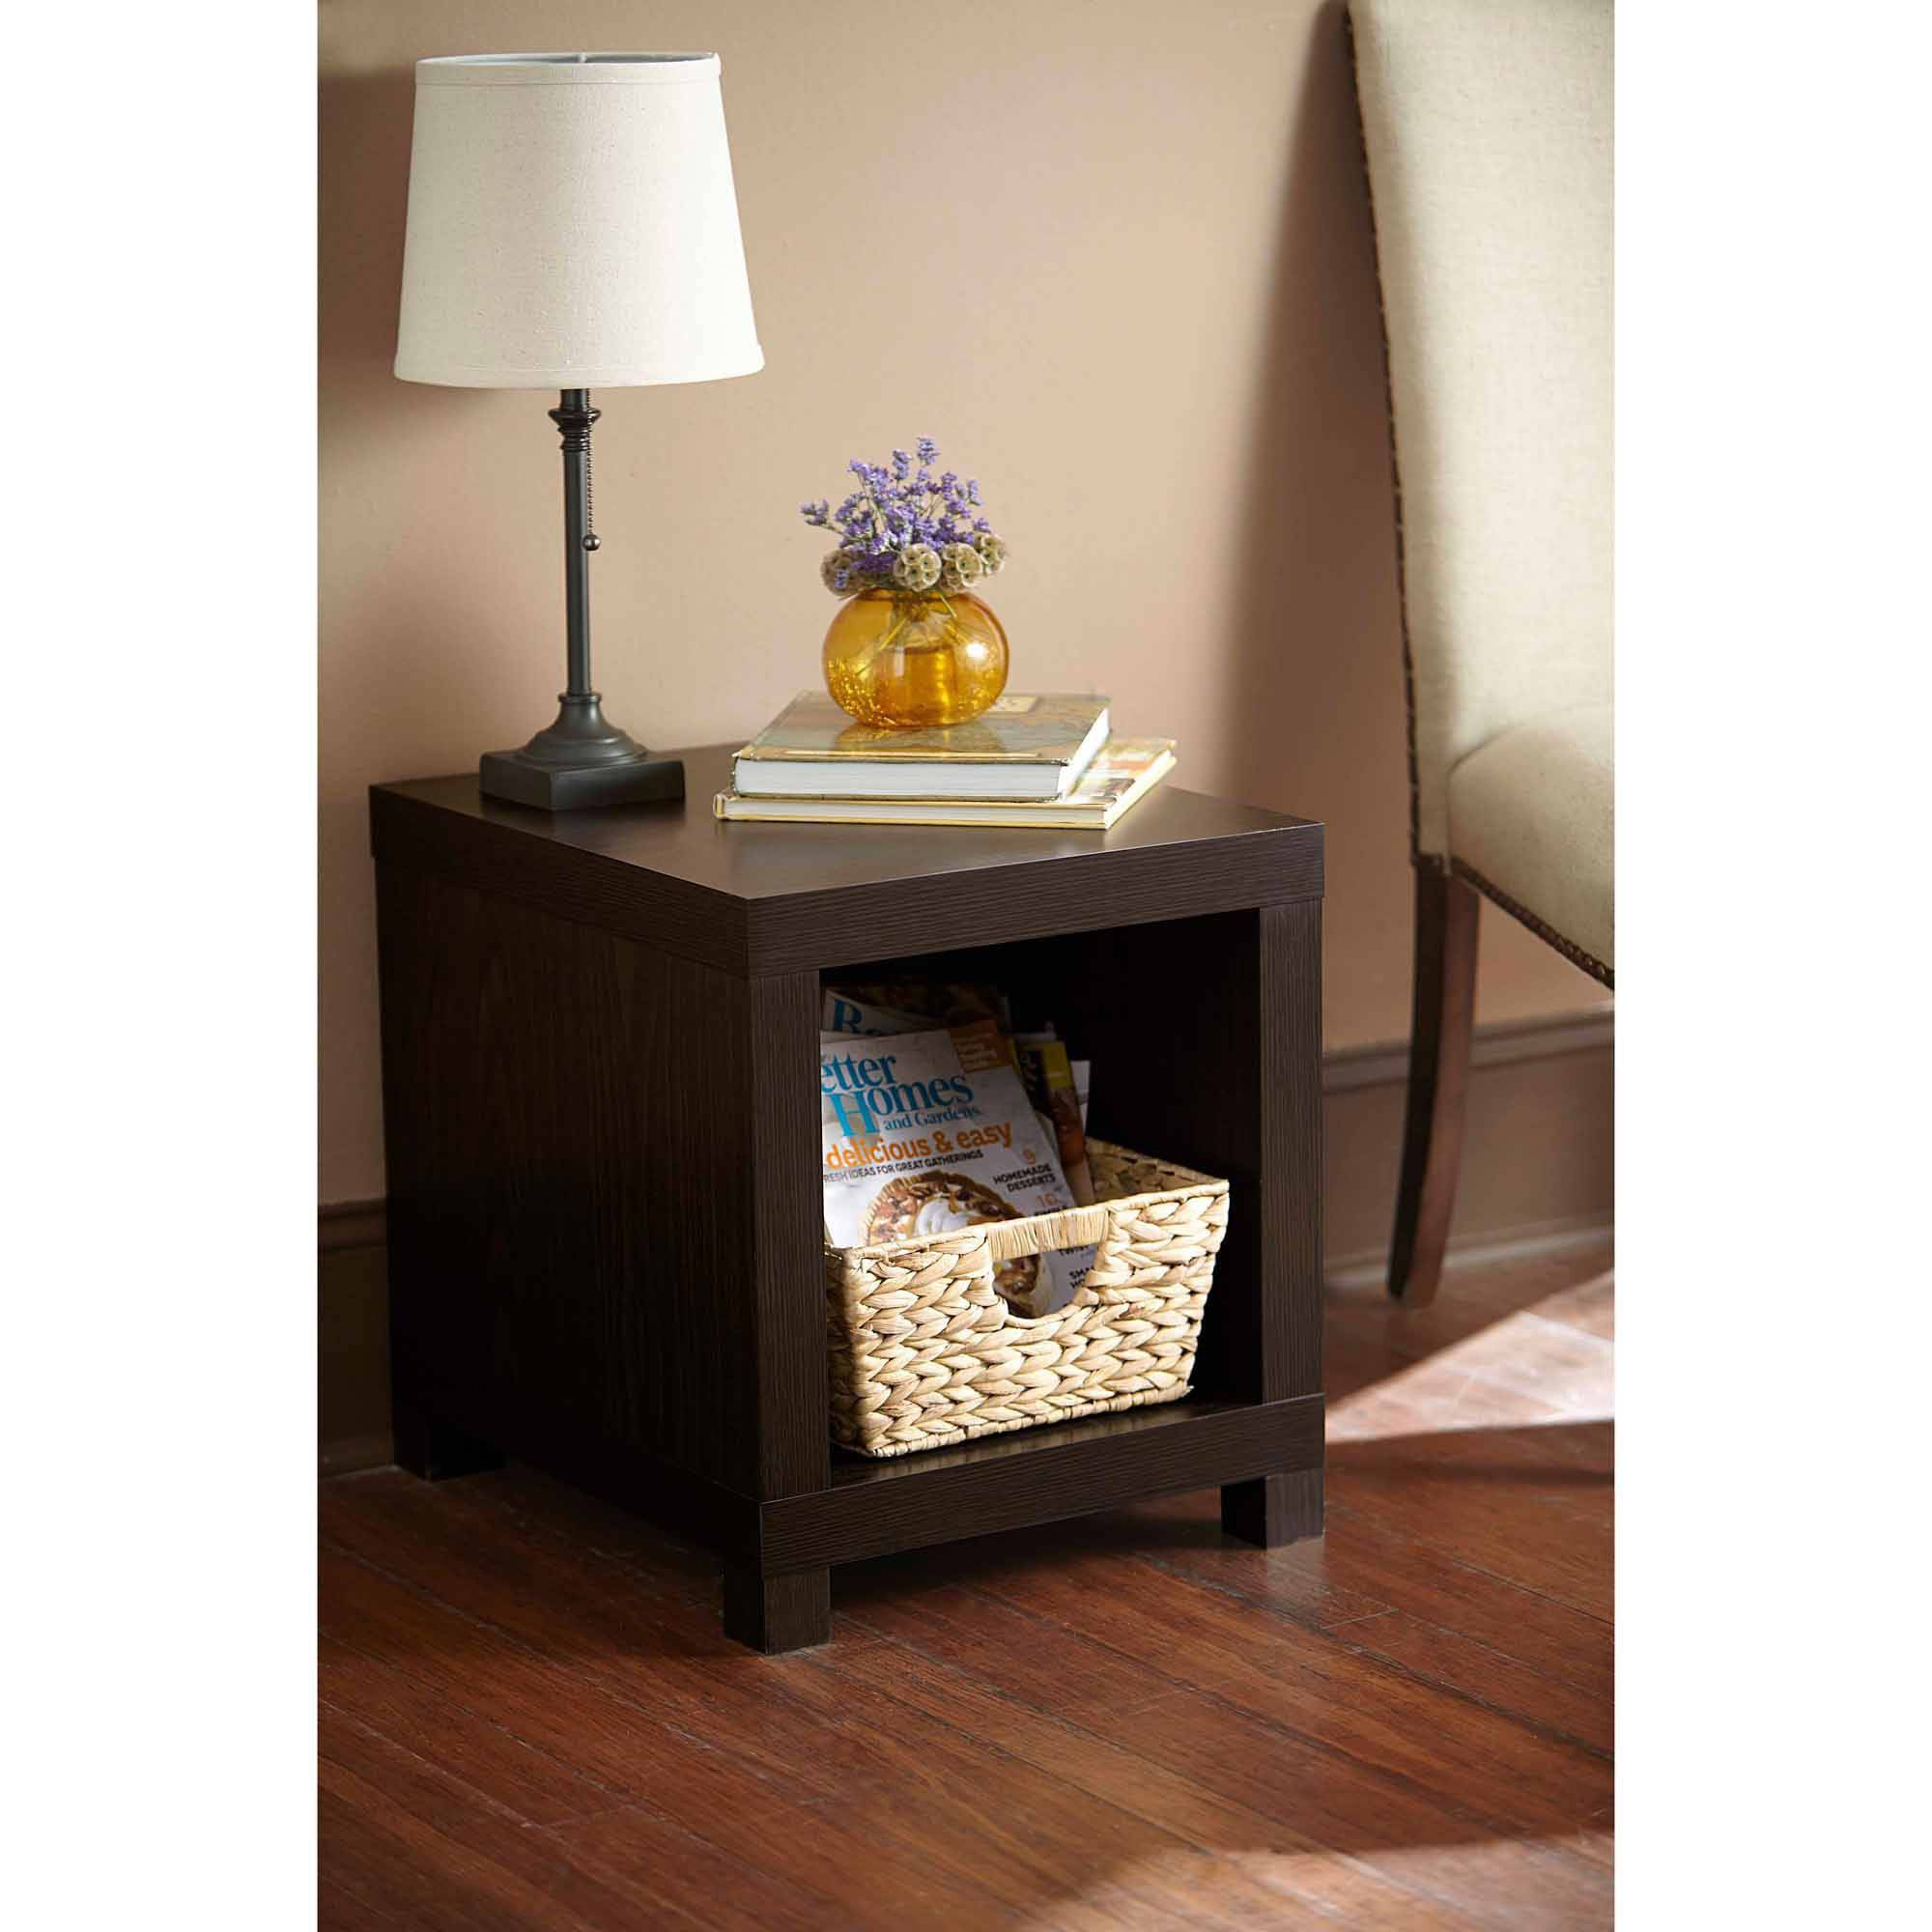 better homes gardens accent table multiple colors furniture tables black and white modern coffee grey round battery led desk lamp rattan drinks cooler wood end with drawers